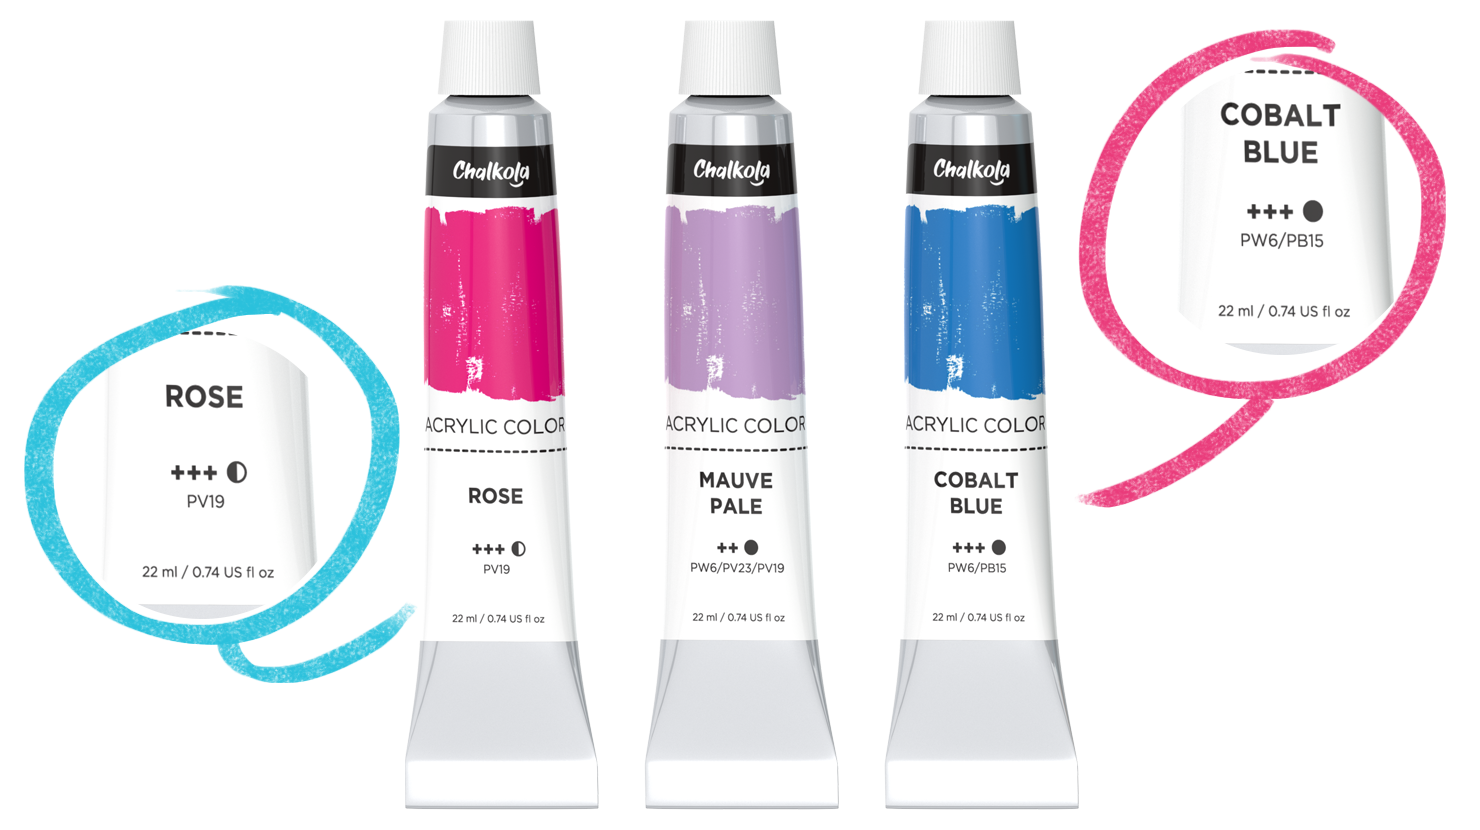 What to Consider when Buying Acrylic Paint - Lightfastness